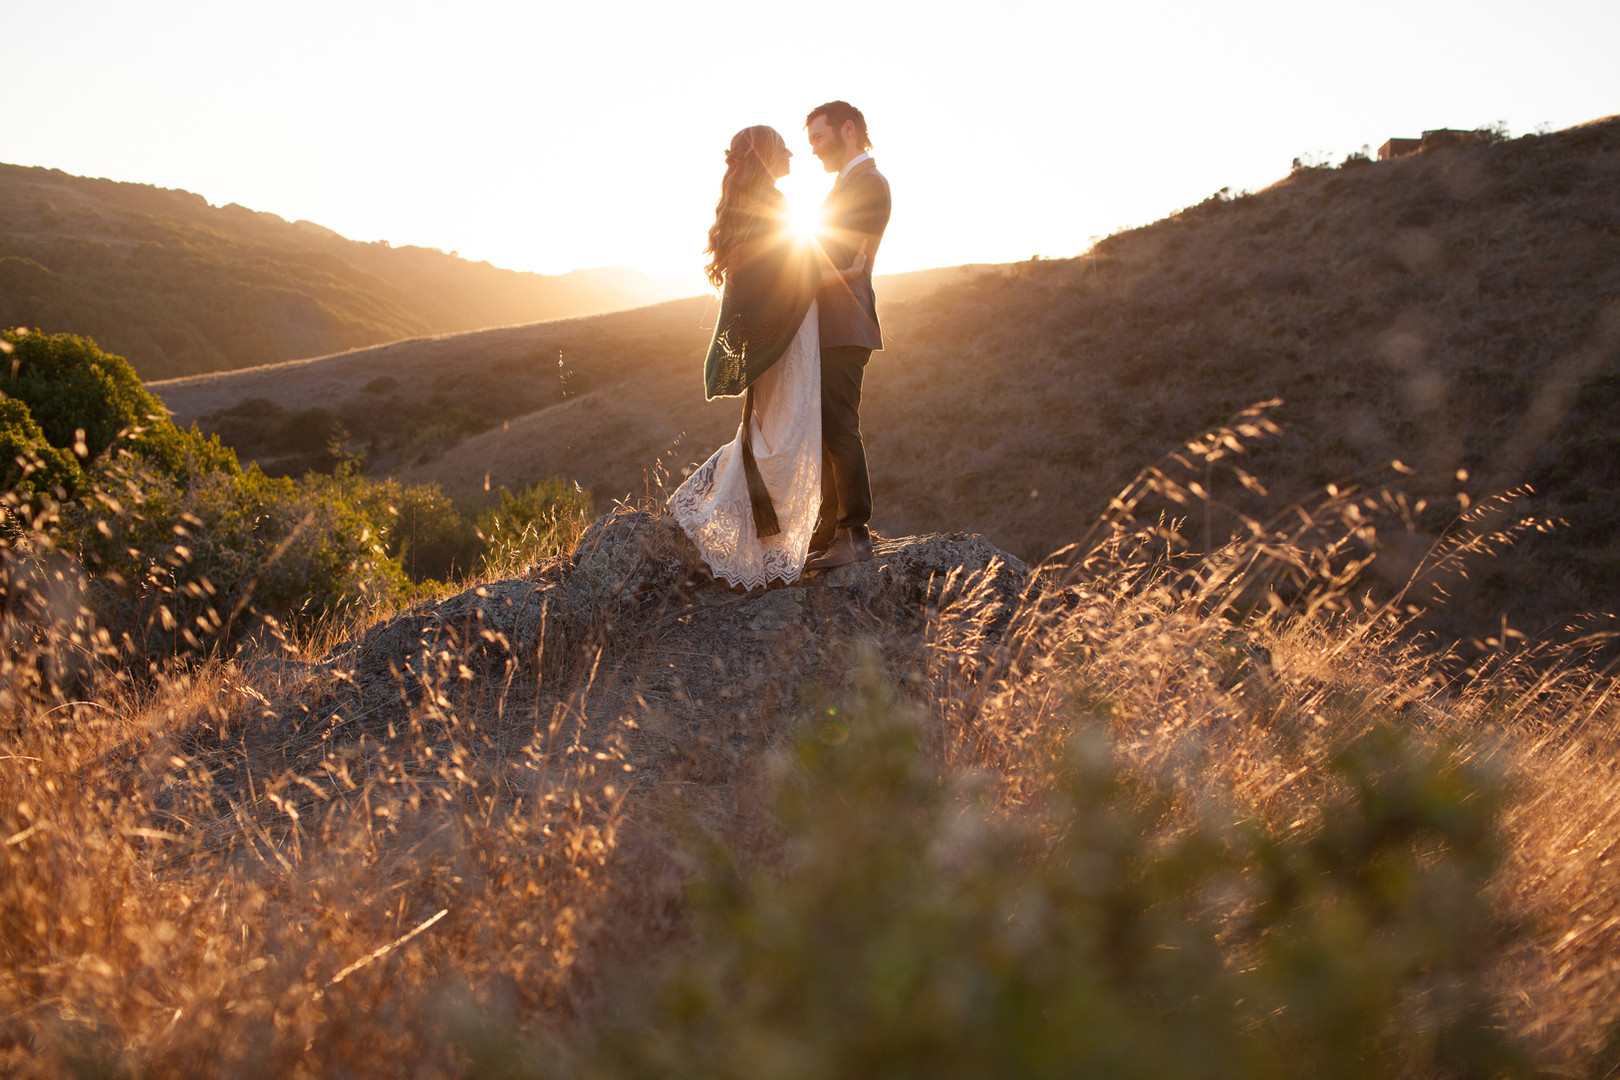 Two people getting married in the sunset